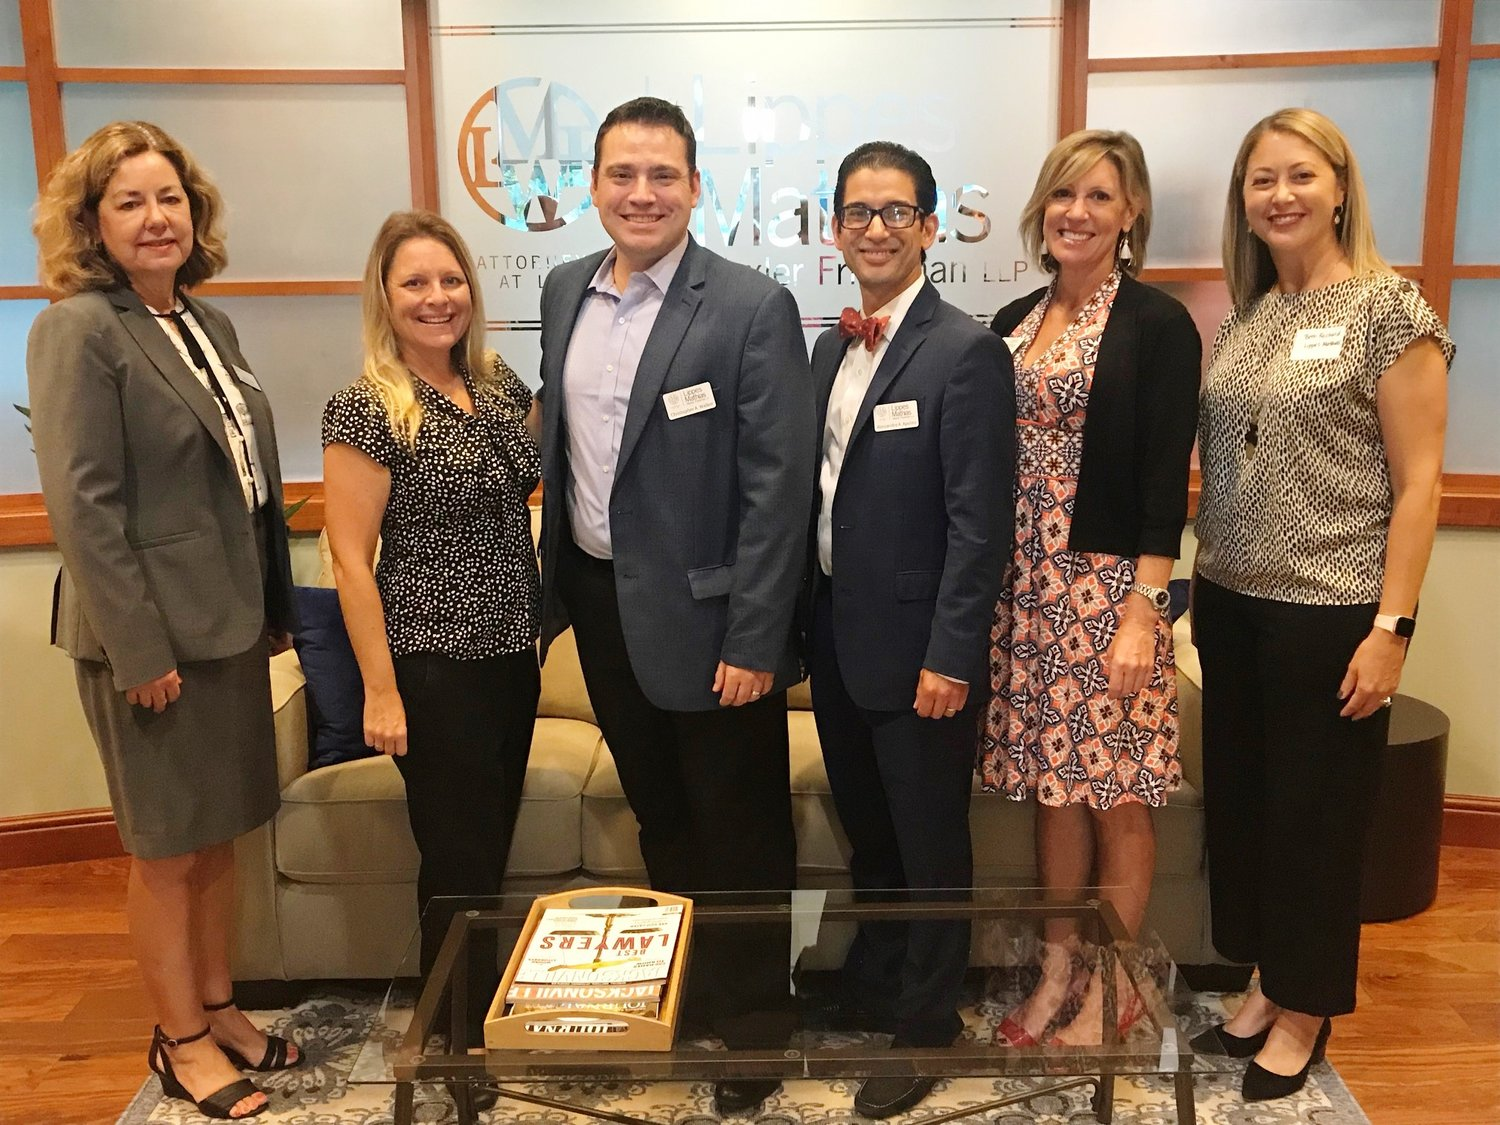 ) Karen Bourque Everett, Erika Hamer, Christopher Walker, Alessandro Apolito, Shannon M. Peabody and Bethany Reichard pose for a photo at the Chamber Before Hours event at Lippes Matthias Wexler Friedman LLP.